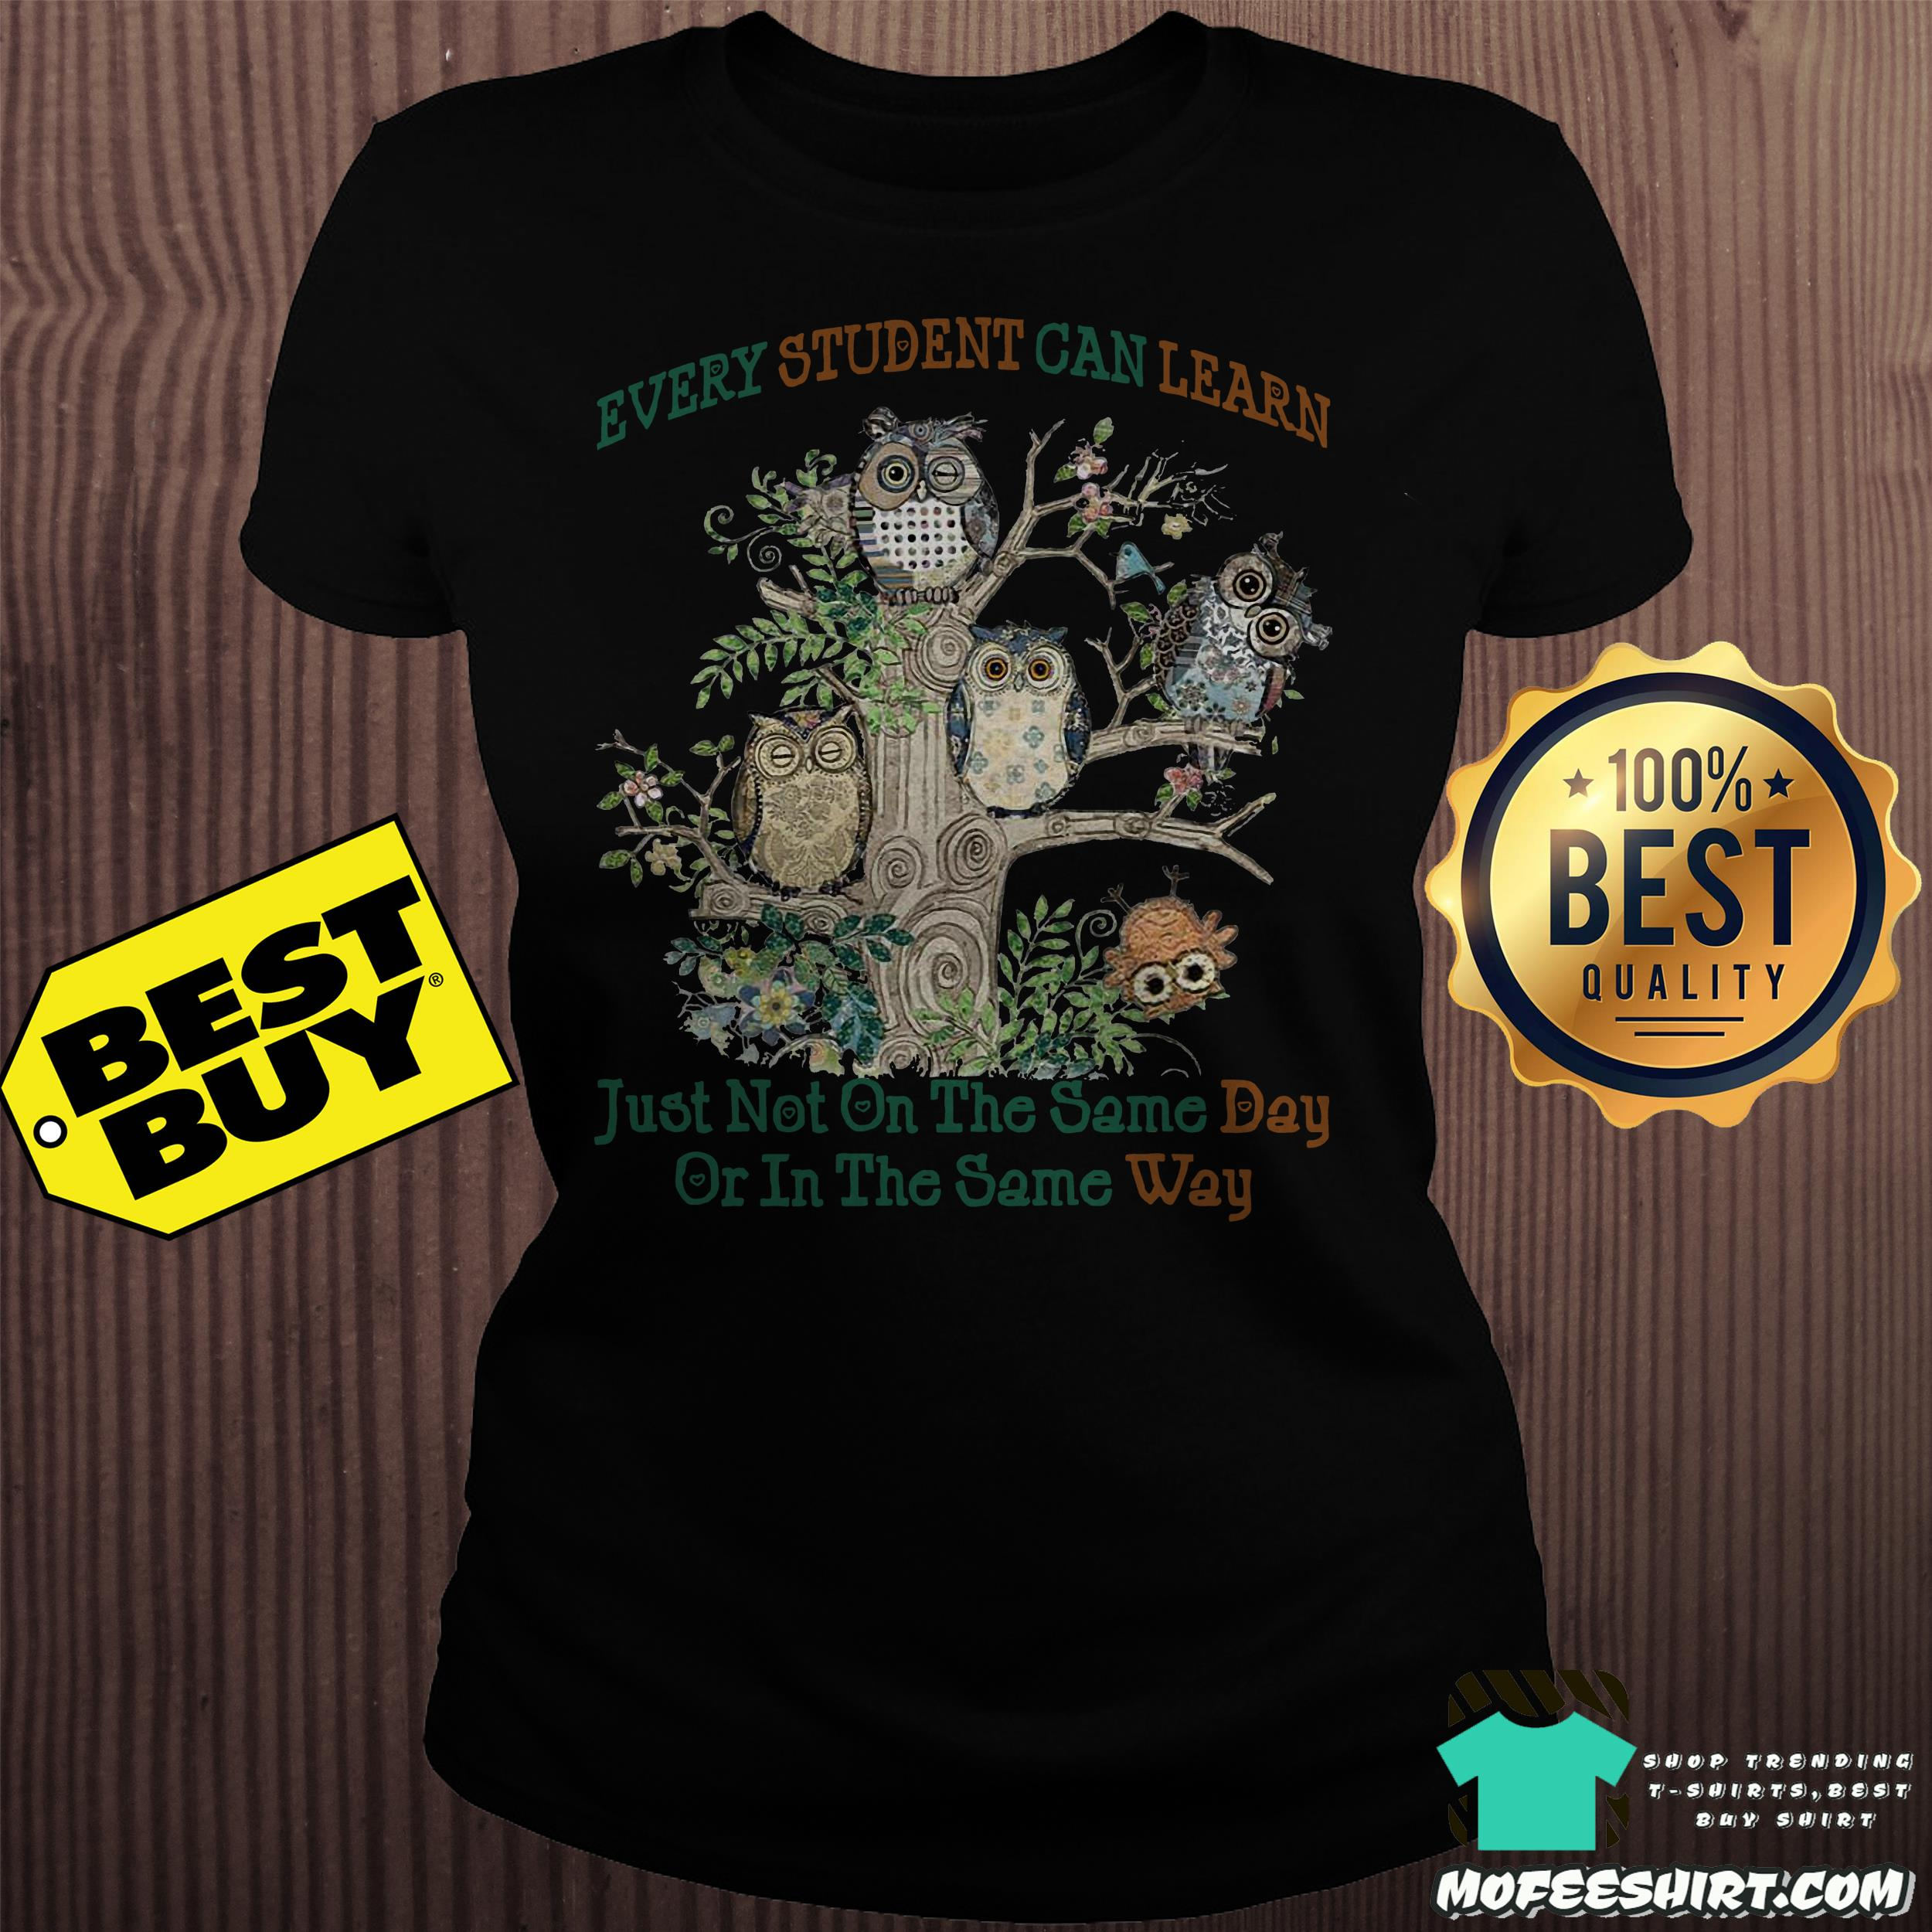 owl and tree every student can learn just not on the same day or in the same way ladies tee - Owl and tree Every student can learn Just not on the same day or in the same way shirt